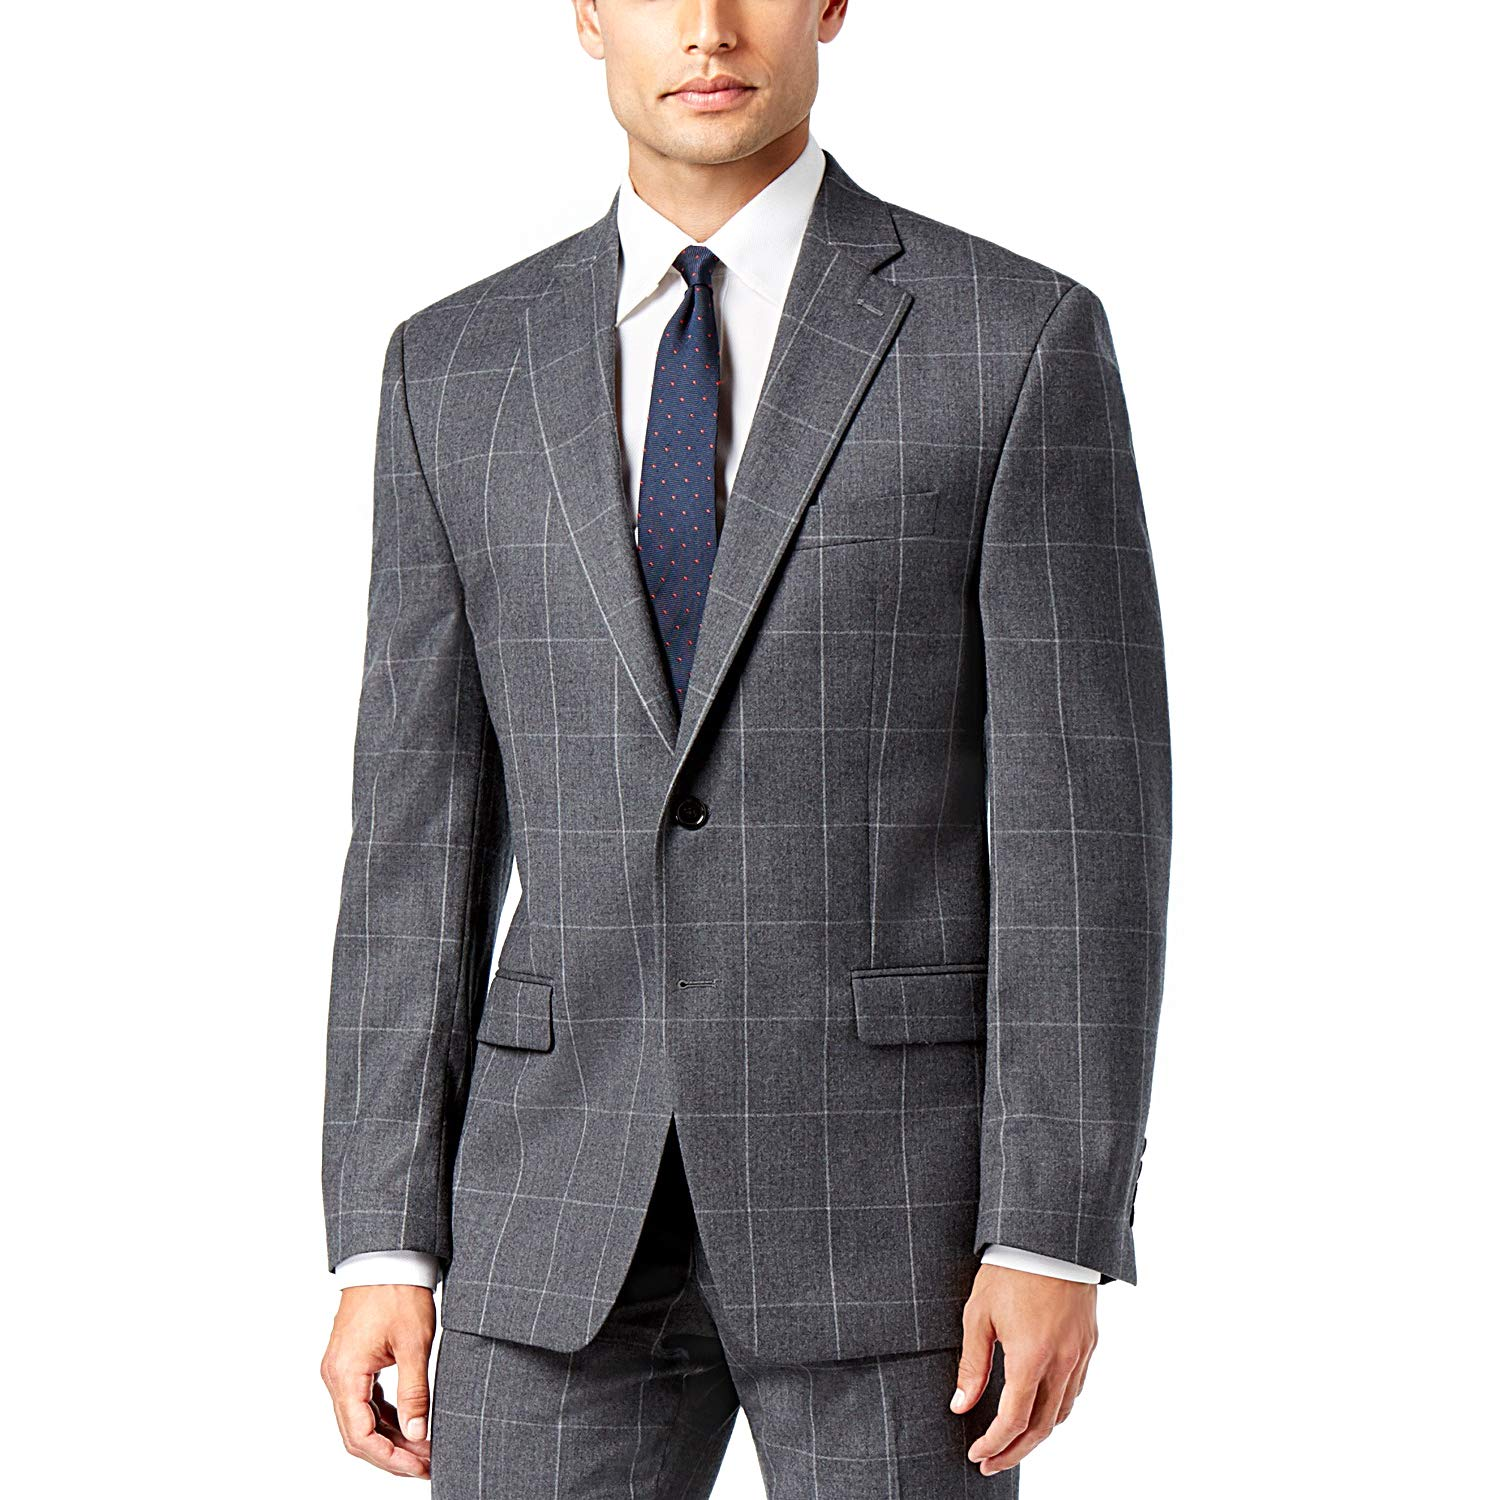 be44adb76 Lauren Ralph Lauren. Mens Ultraflex Classic-Fit Windowpane Suit ...